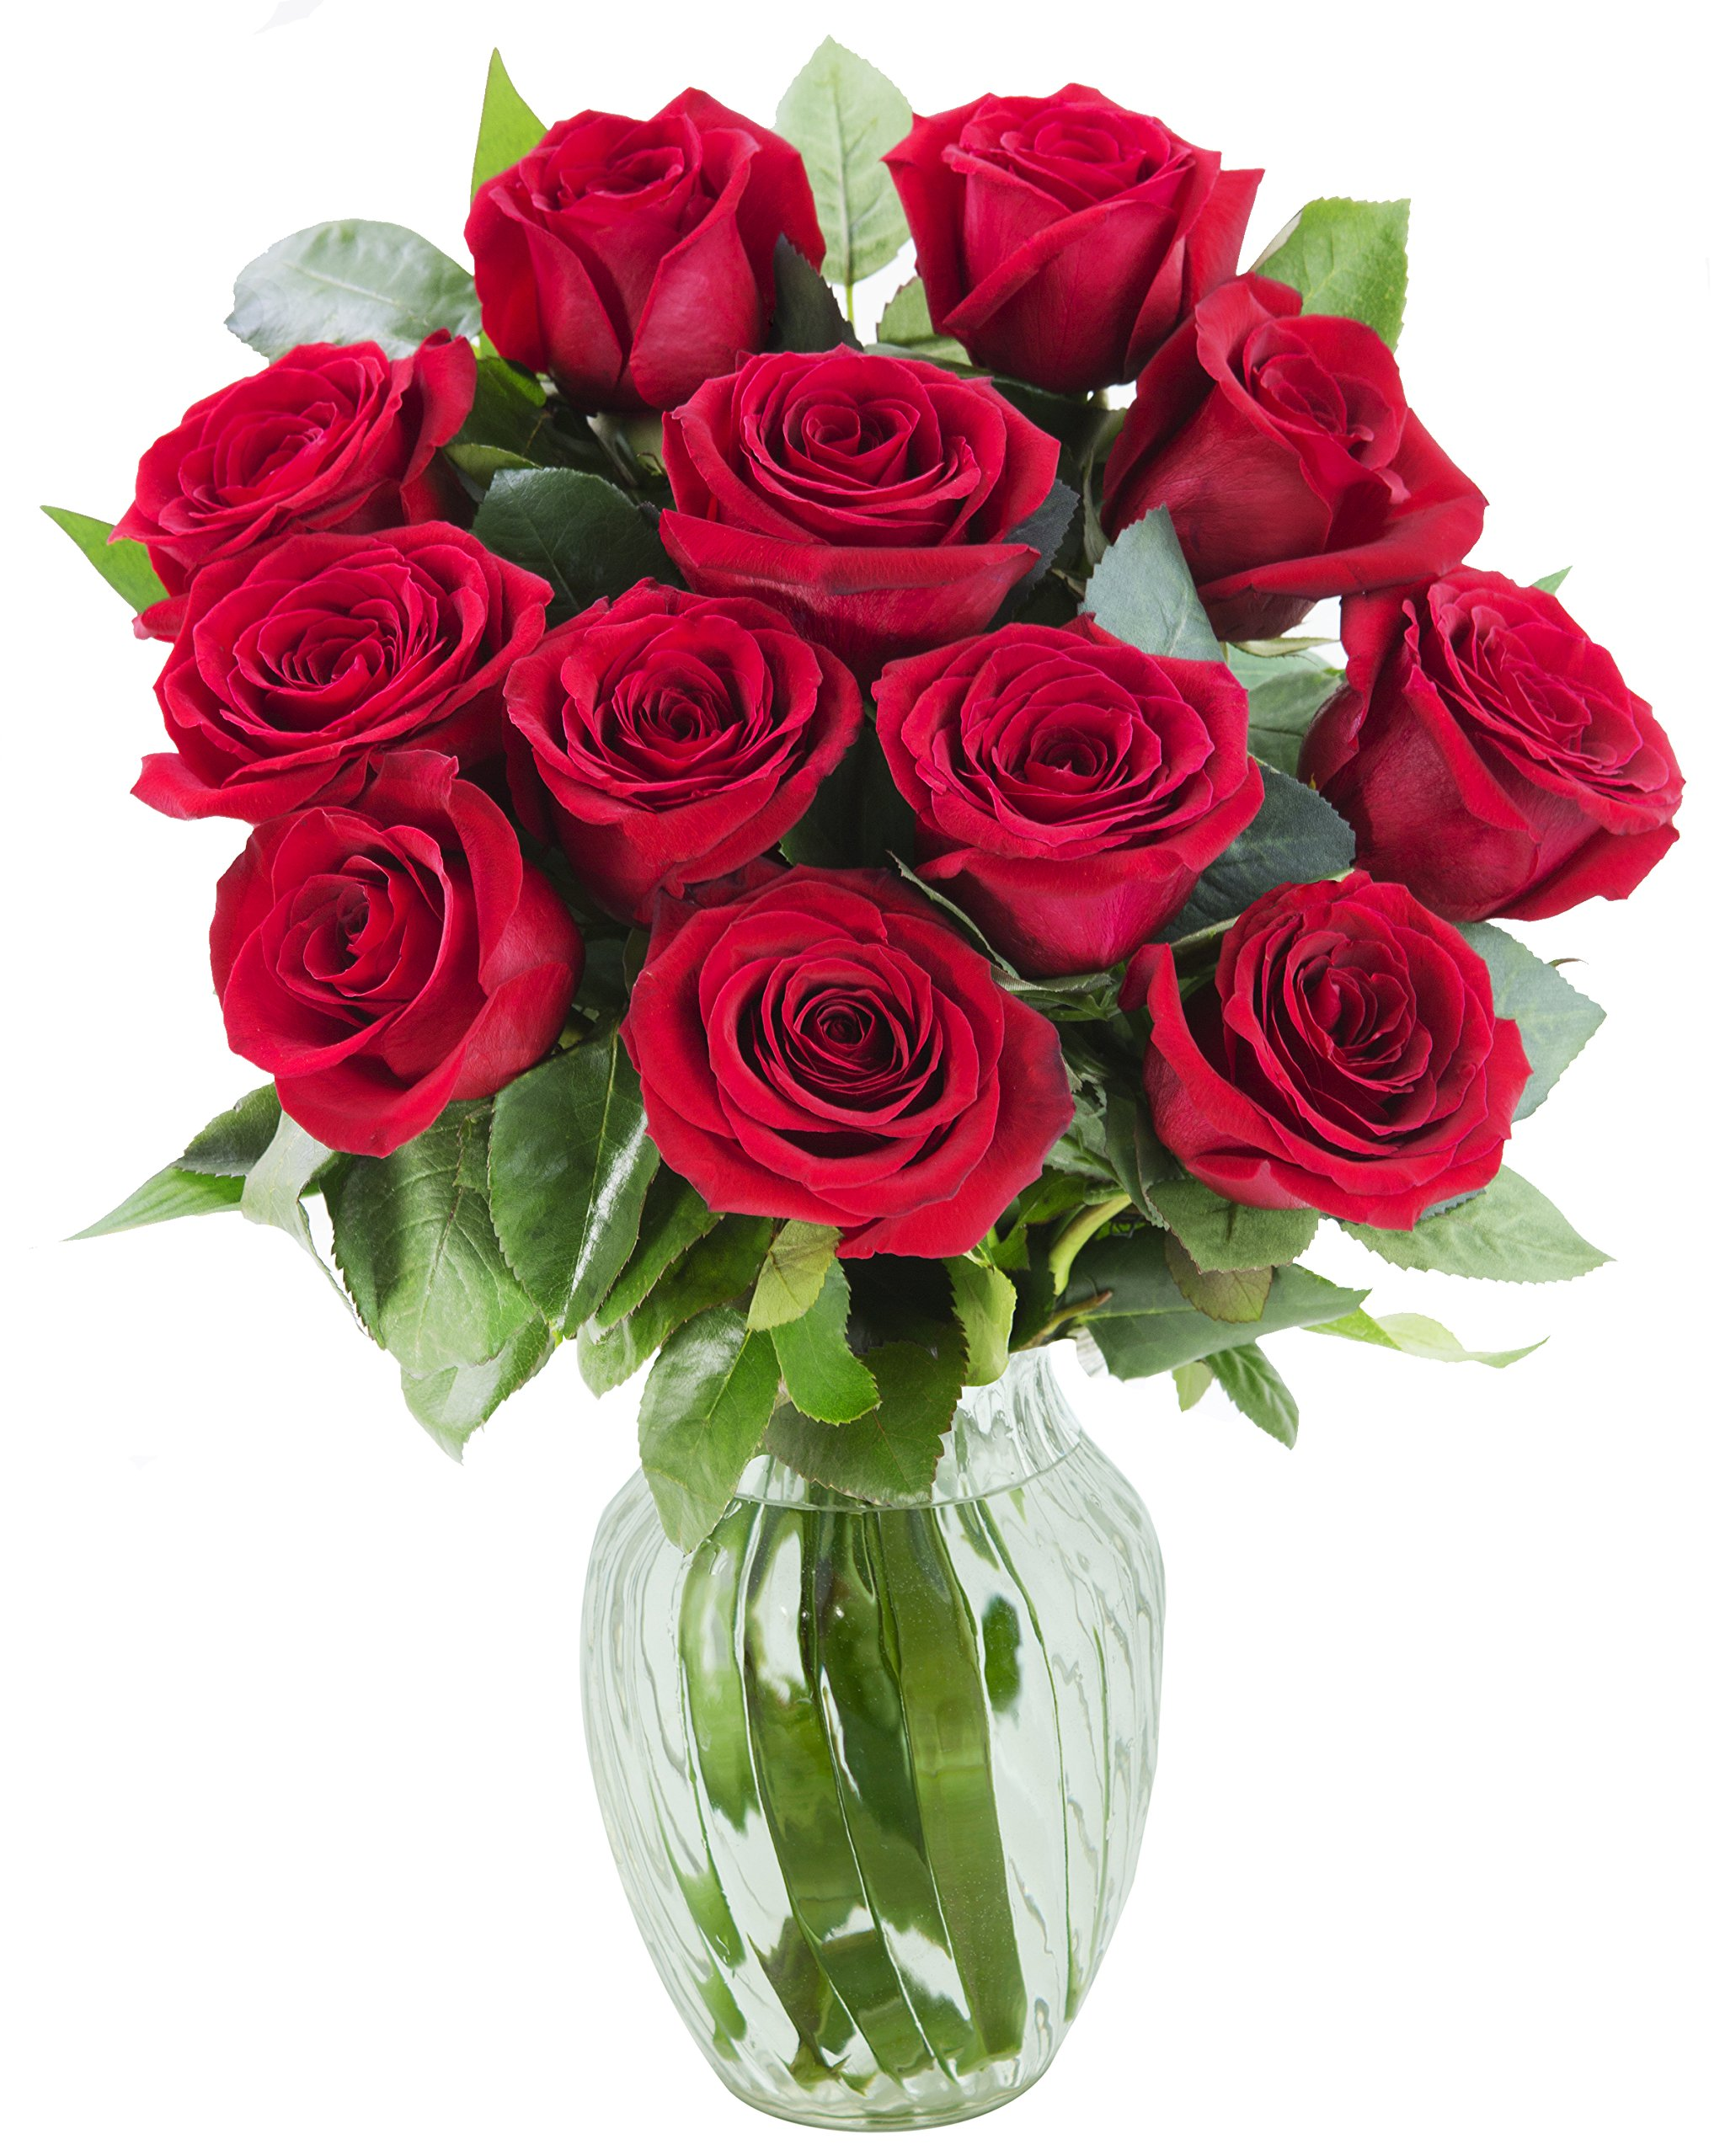 KaBloom The Romantic Classic Bouquet of 12 Fresh Red Roses (Farm-Fresh, Long-Stem) with Vase